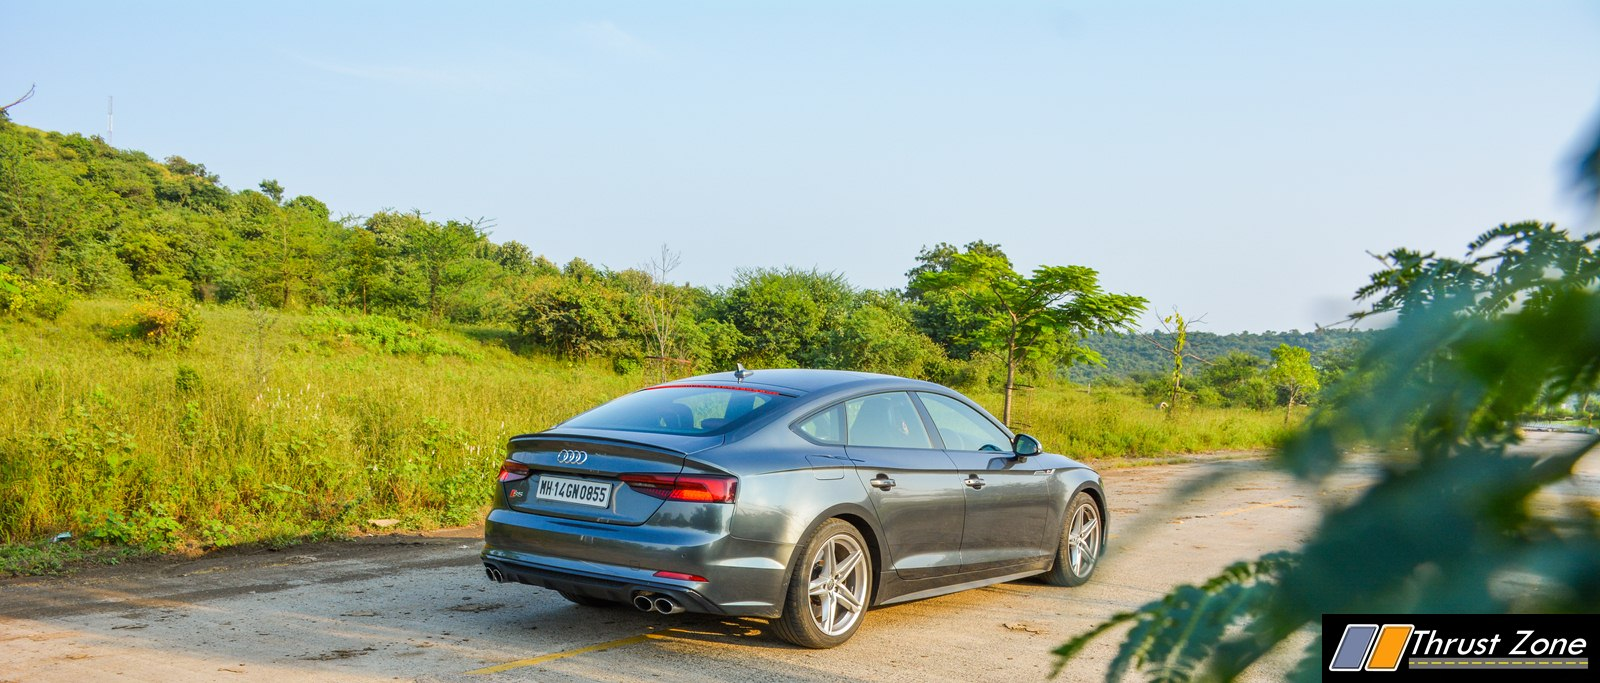 https://www.thrustzone.com/wp-content/uploads/2018/10/2018-Audi-S5-India-Review-17.jpg